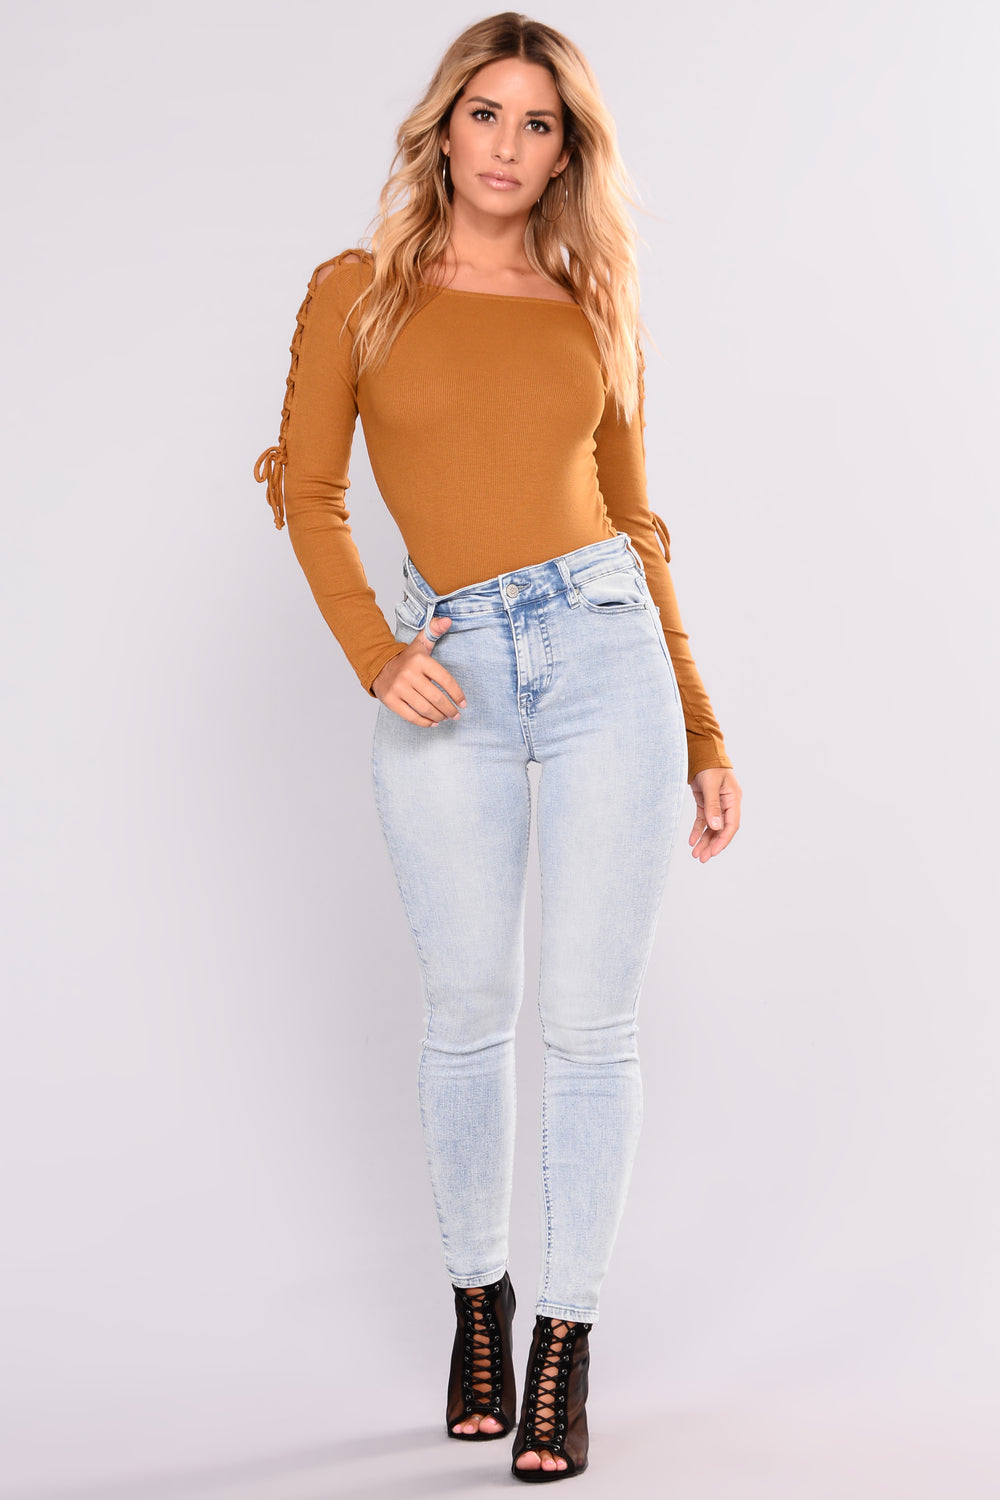 Eva Off Shoulder Lace Up Top - Mustard